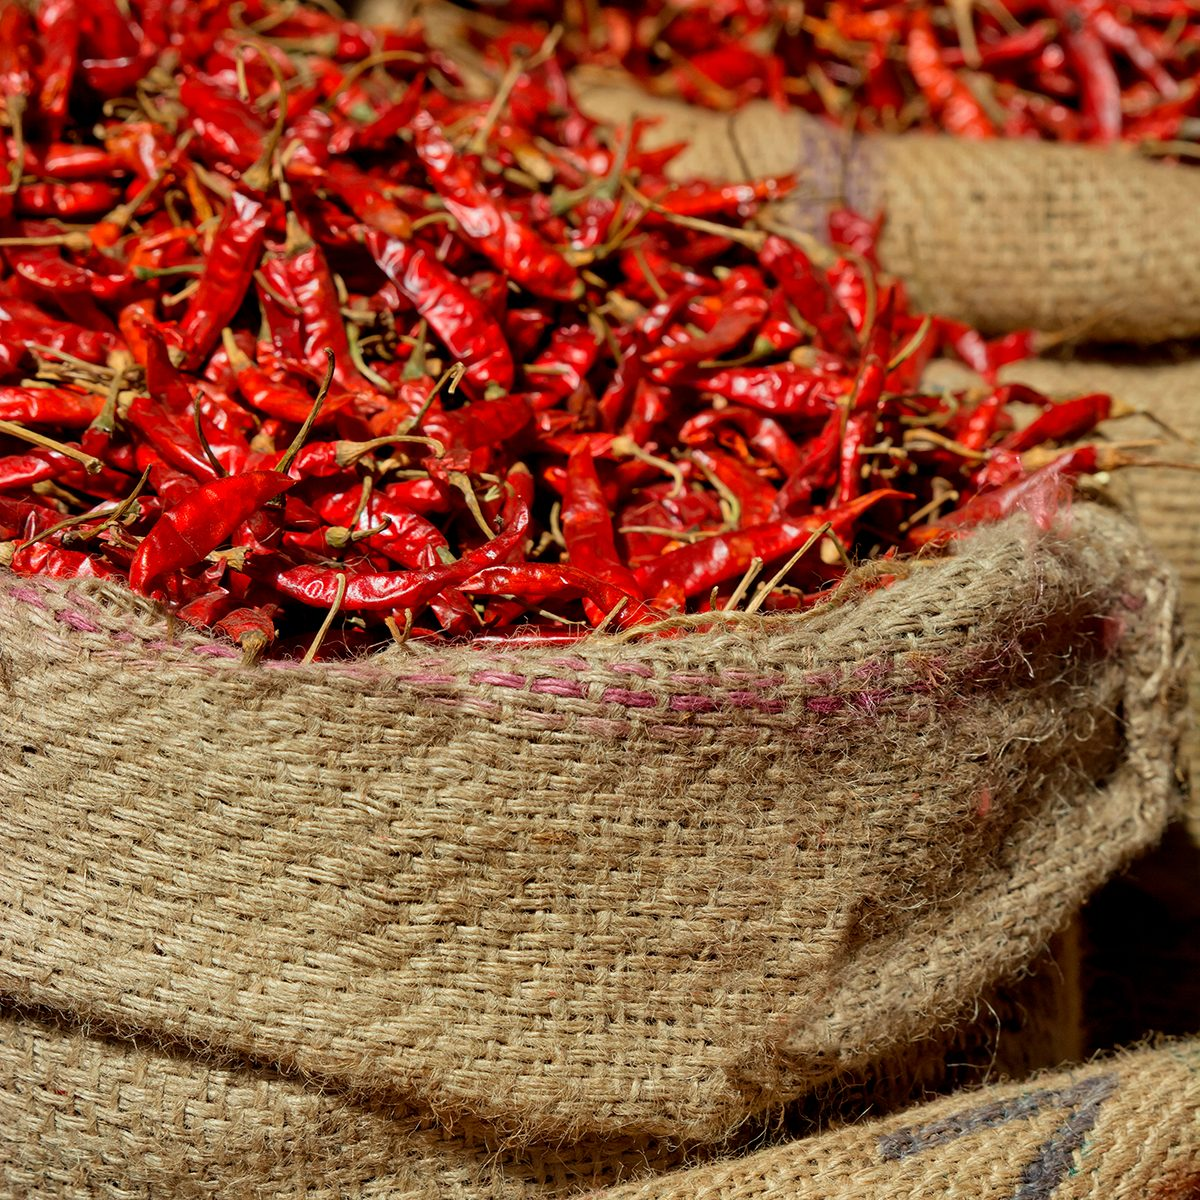 indian spices Red Dried Chili Peppers For Sale At Market. India. (Photo by: Madhurima Sil/IndiaPictures/Universal Images Group via Getty Images)